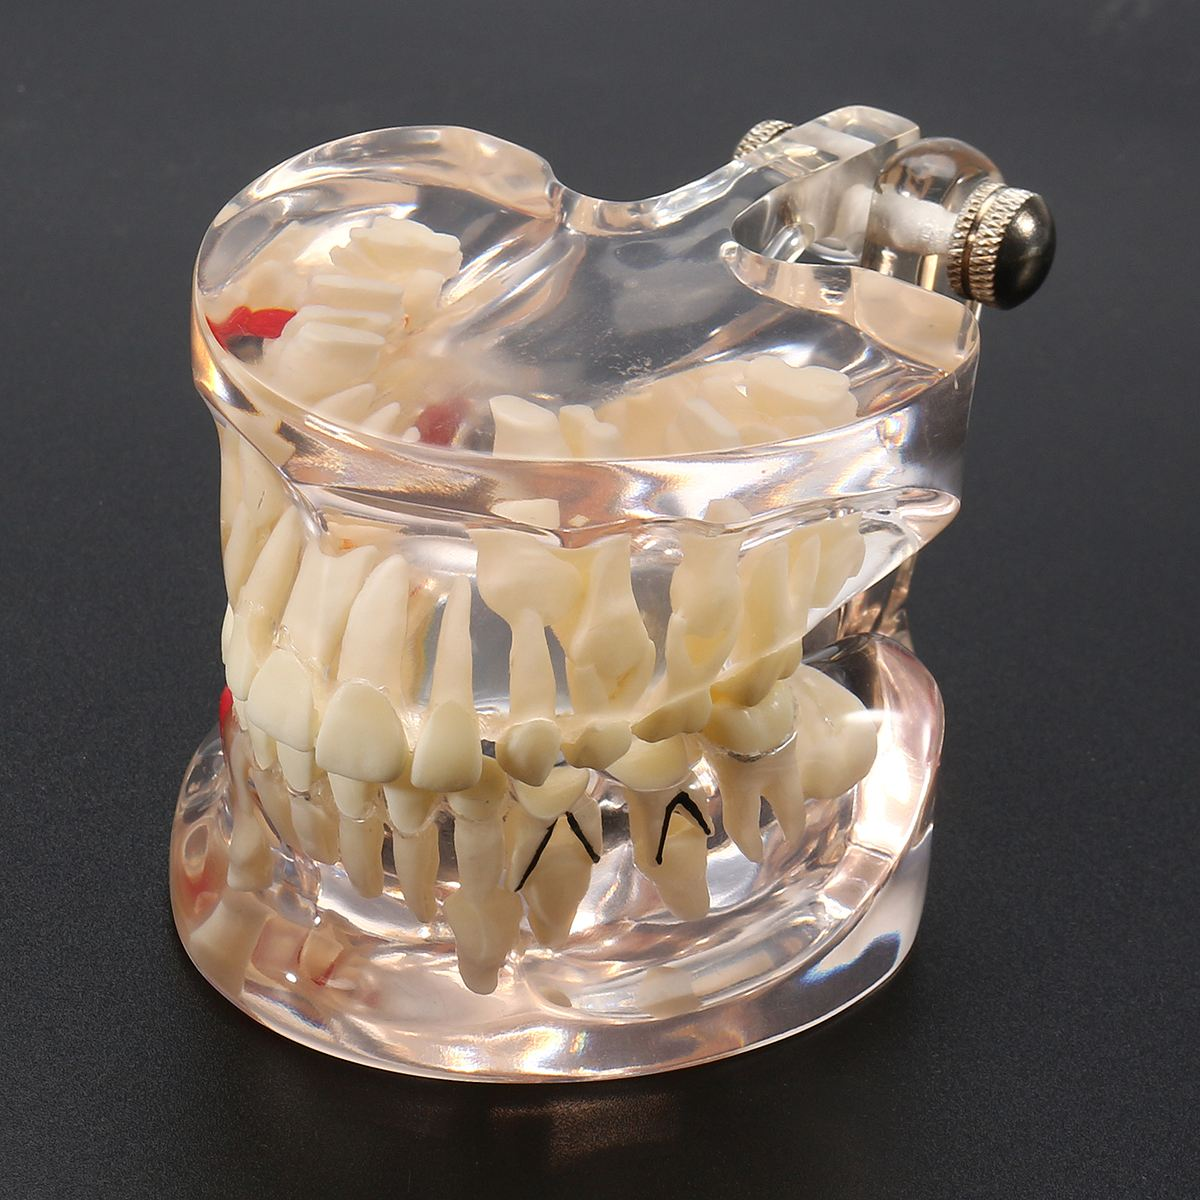 Dental Premature Disease Teeth Model Transparent Caries Pathological Demonstration Tooth Child Study Teaching Showing 2018 dental caries developing illusteation tooth model demonstration teach patient